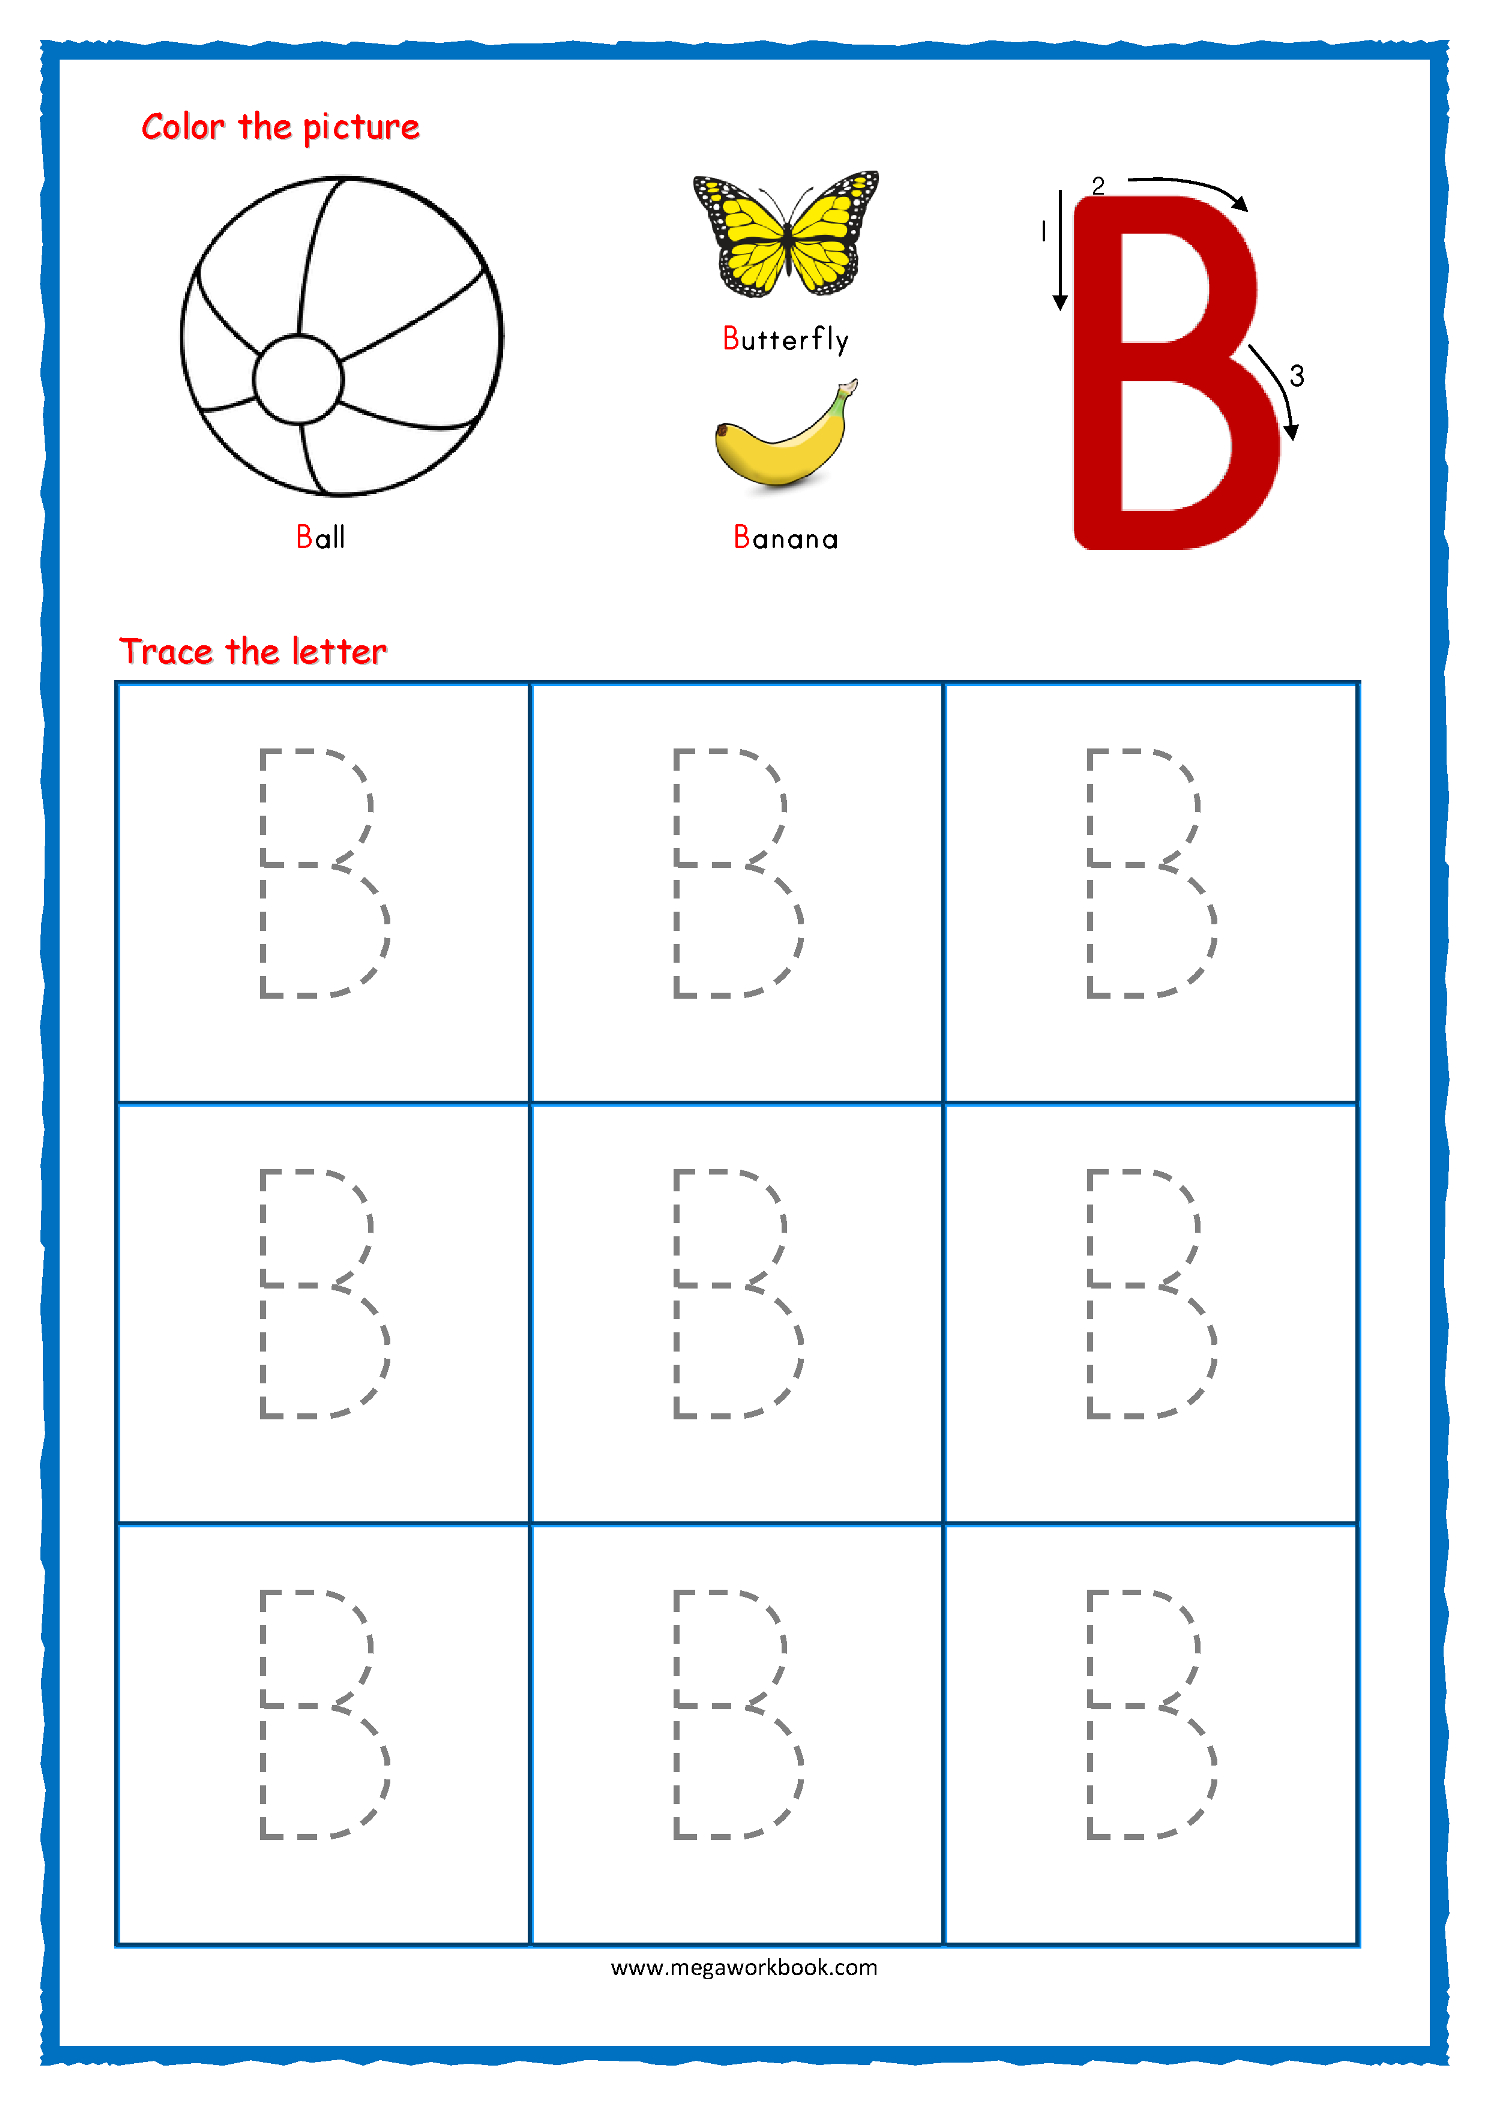 Coloring Book : Free Preschool Printables Coloring Book inside Tracing Letters Of The Alphabet Worksheets